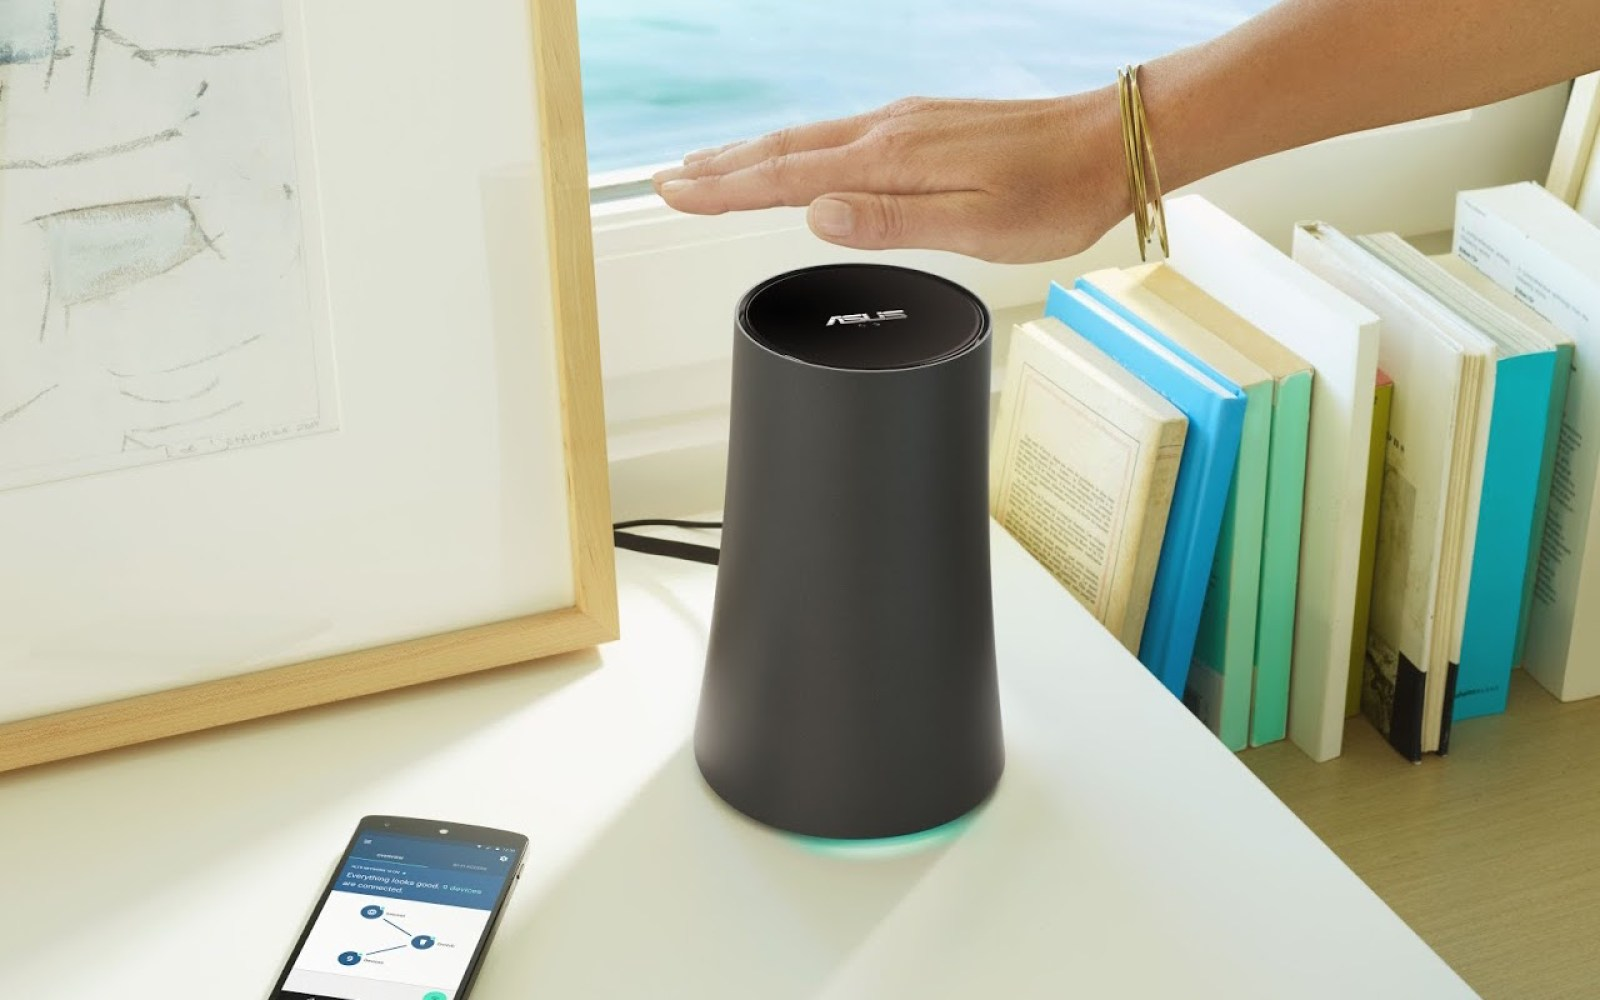 OffHub: Google set to announce a router called 'Google WiFi' on October 4th